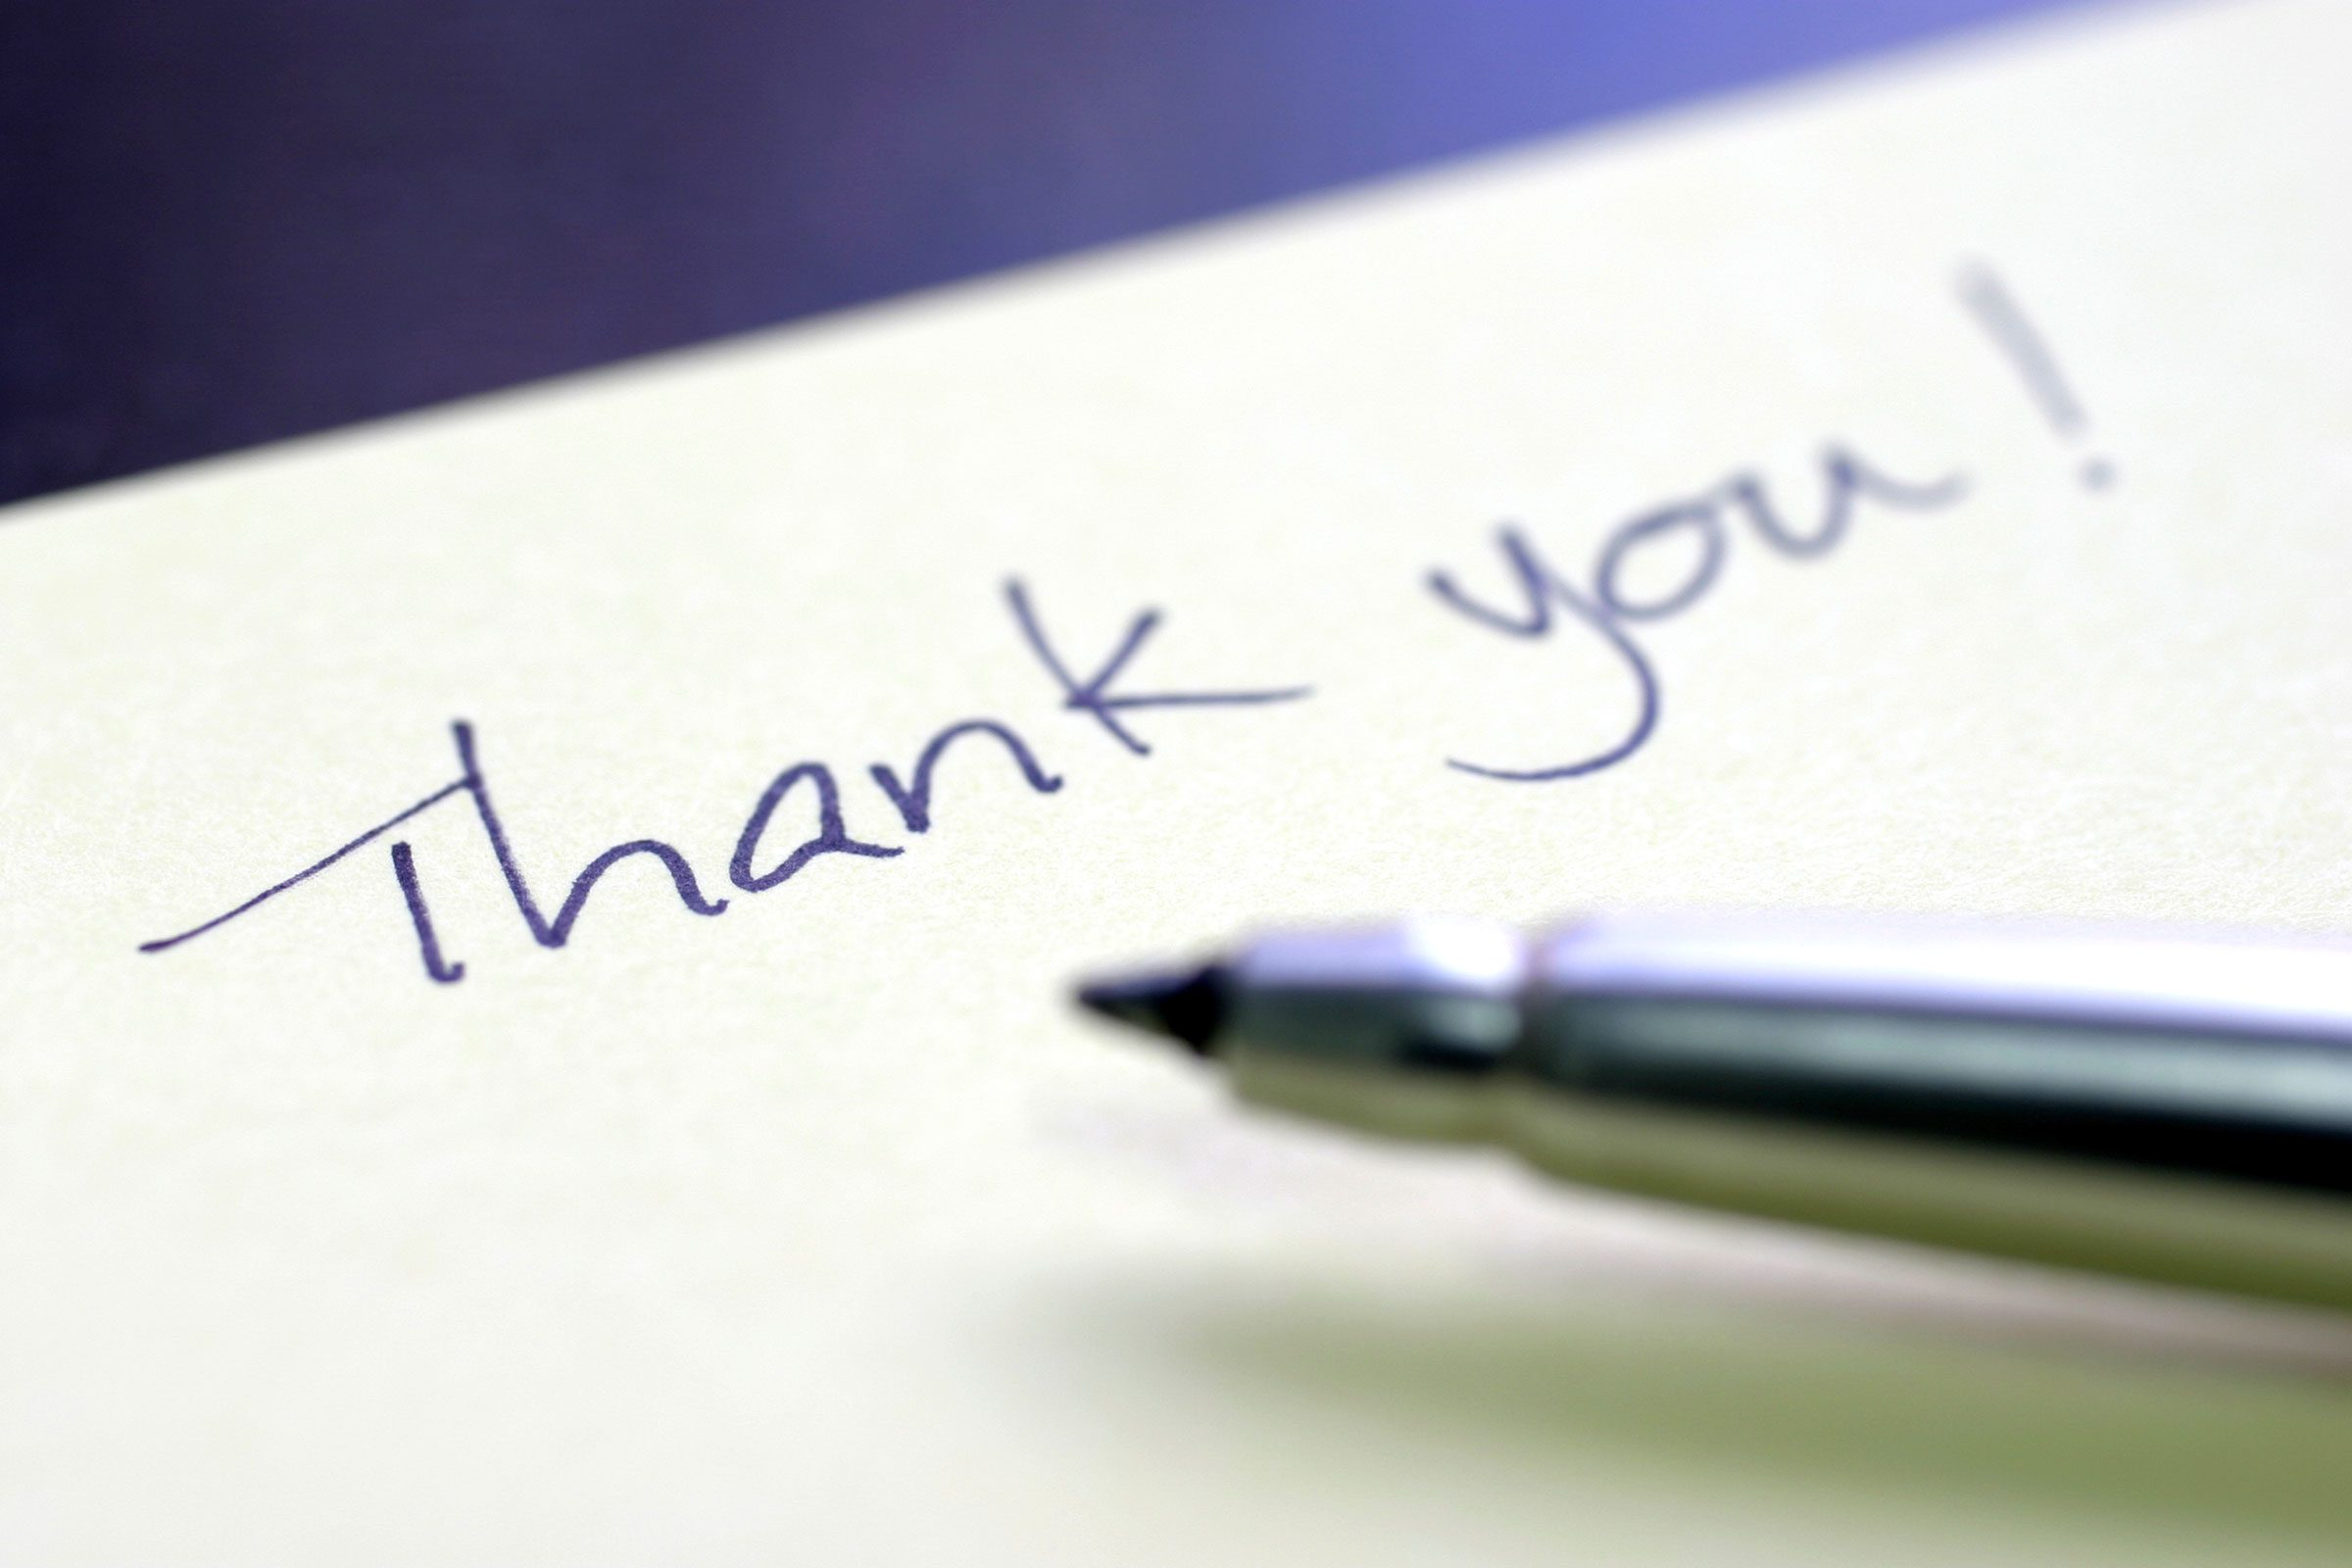 That tiny thank-you card that took you 15 seconds to write?